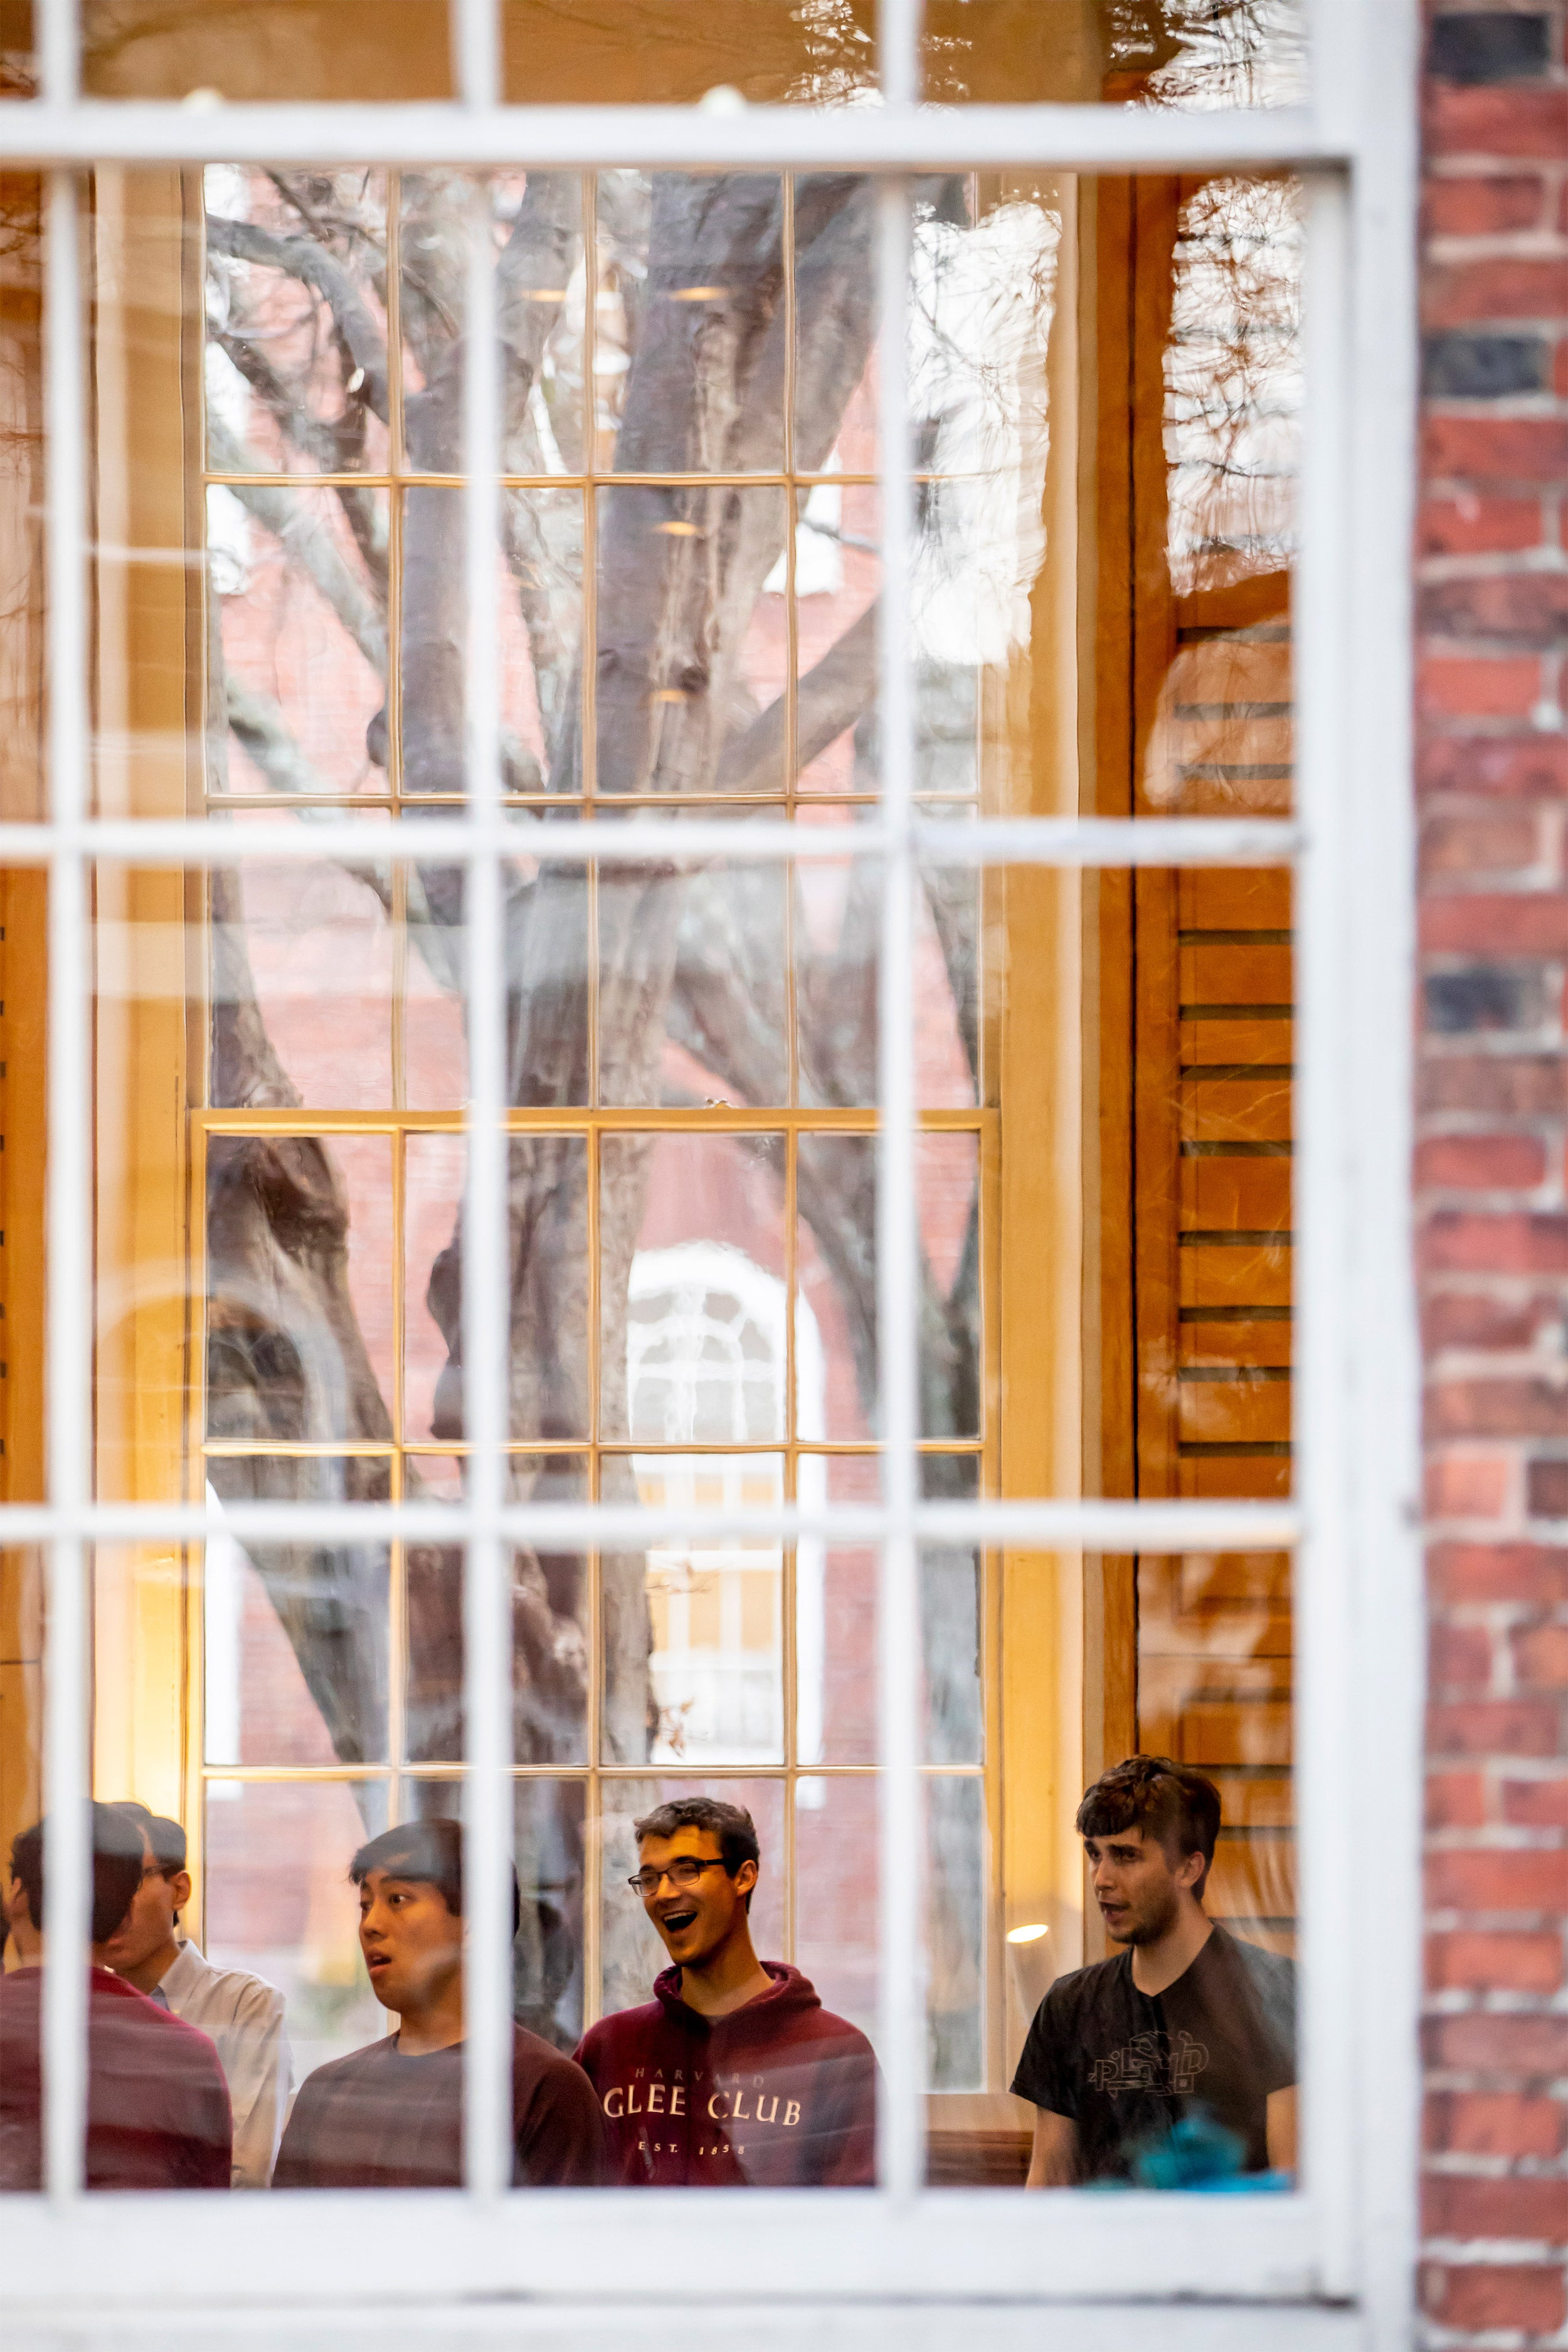 Through a window, the Harvard Glee Club rehearses.